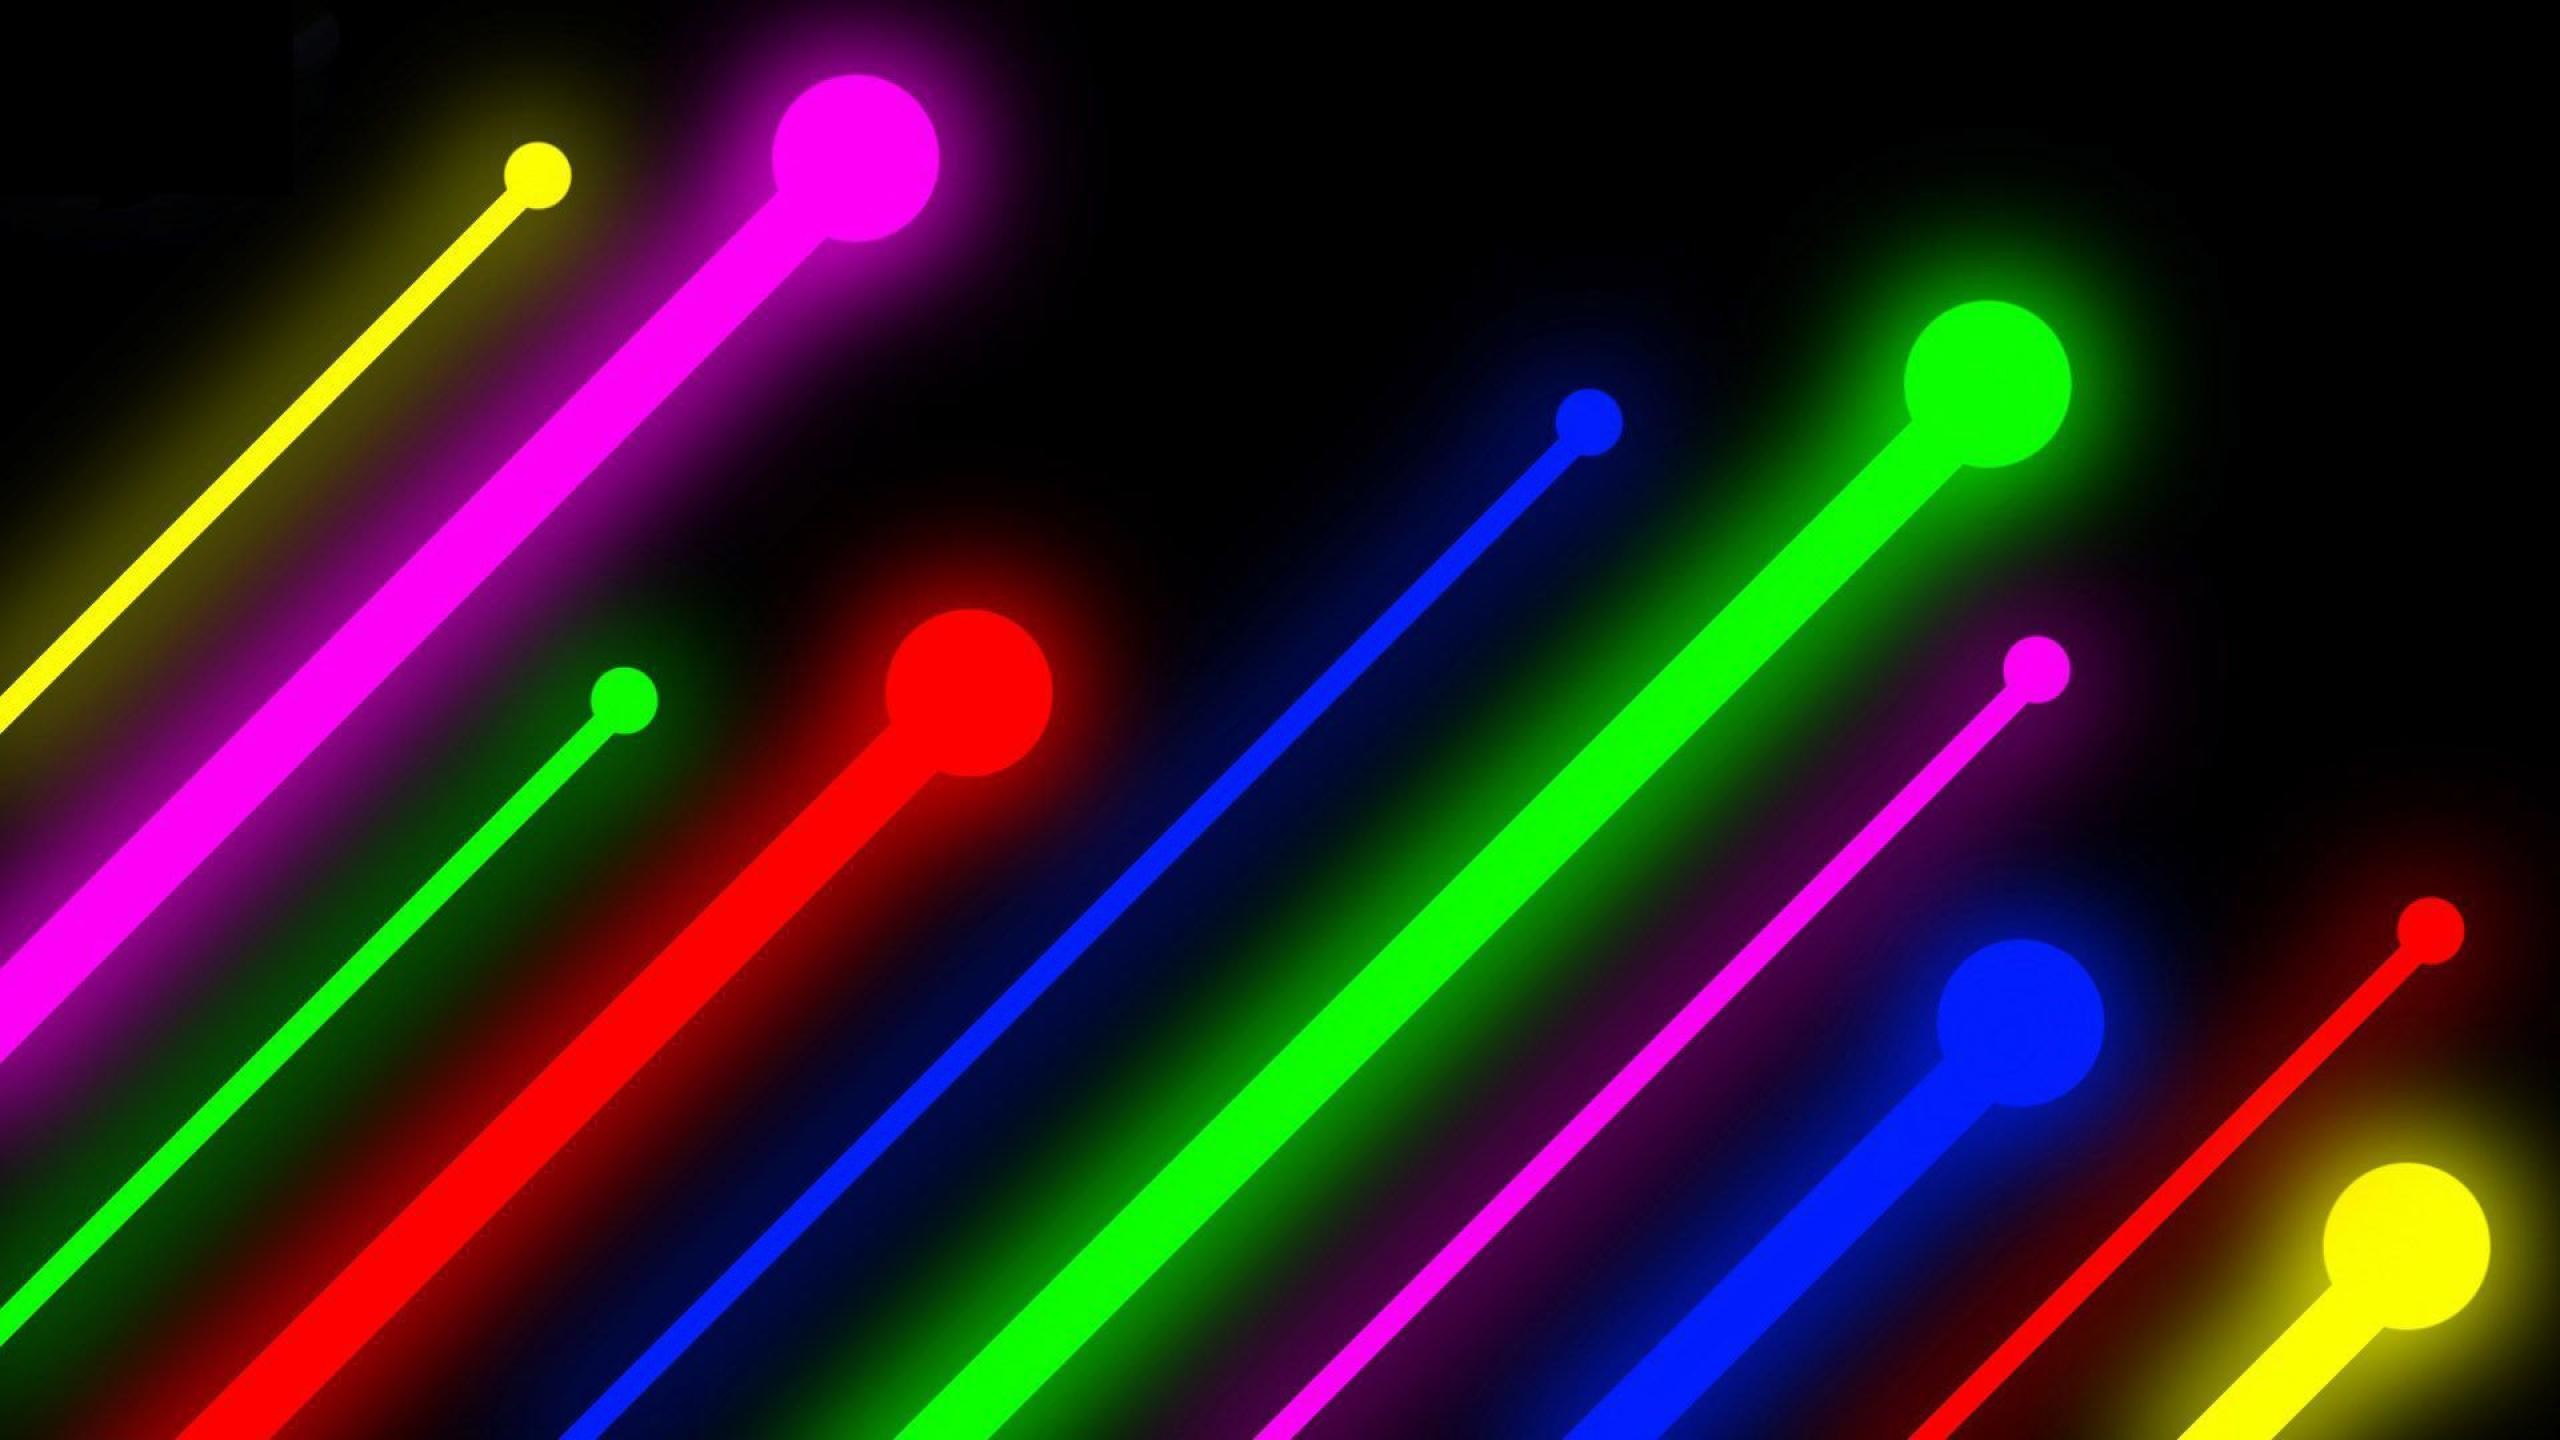 Hd Neon Abstract Wallpaper 79 Images